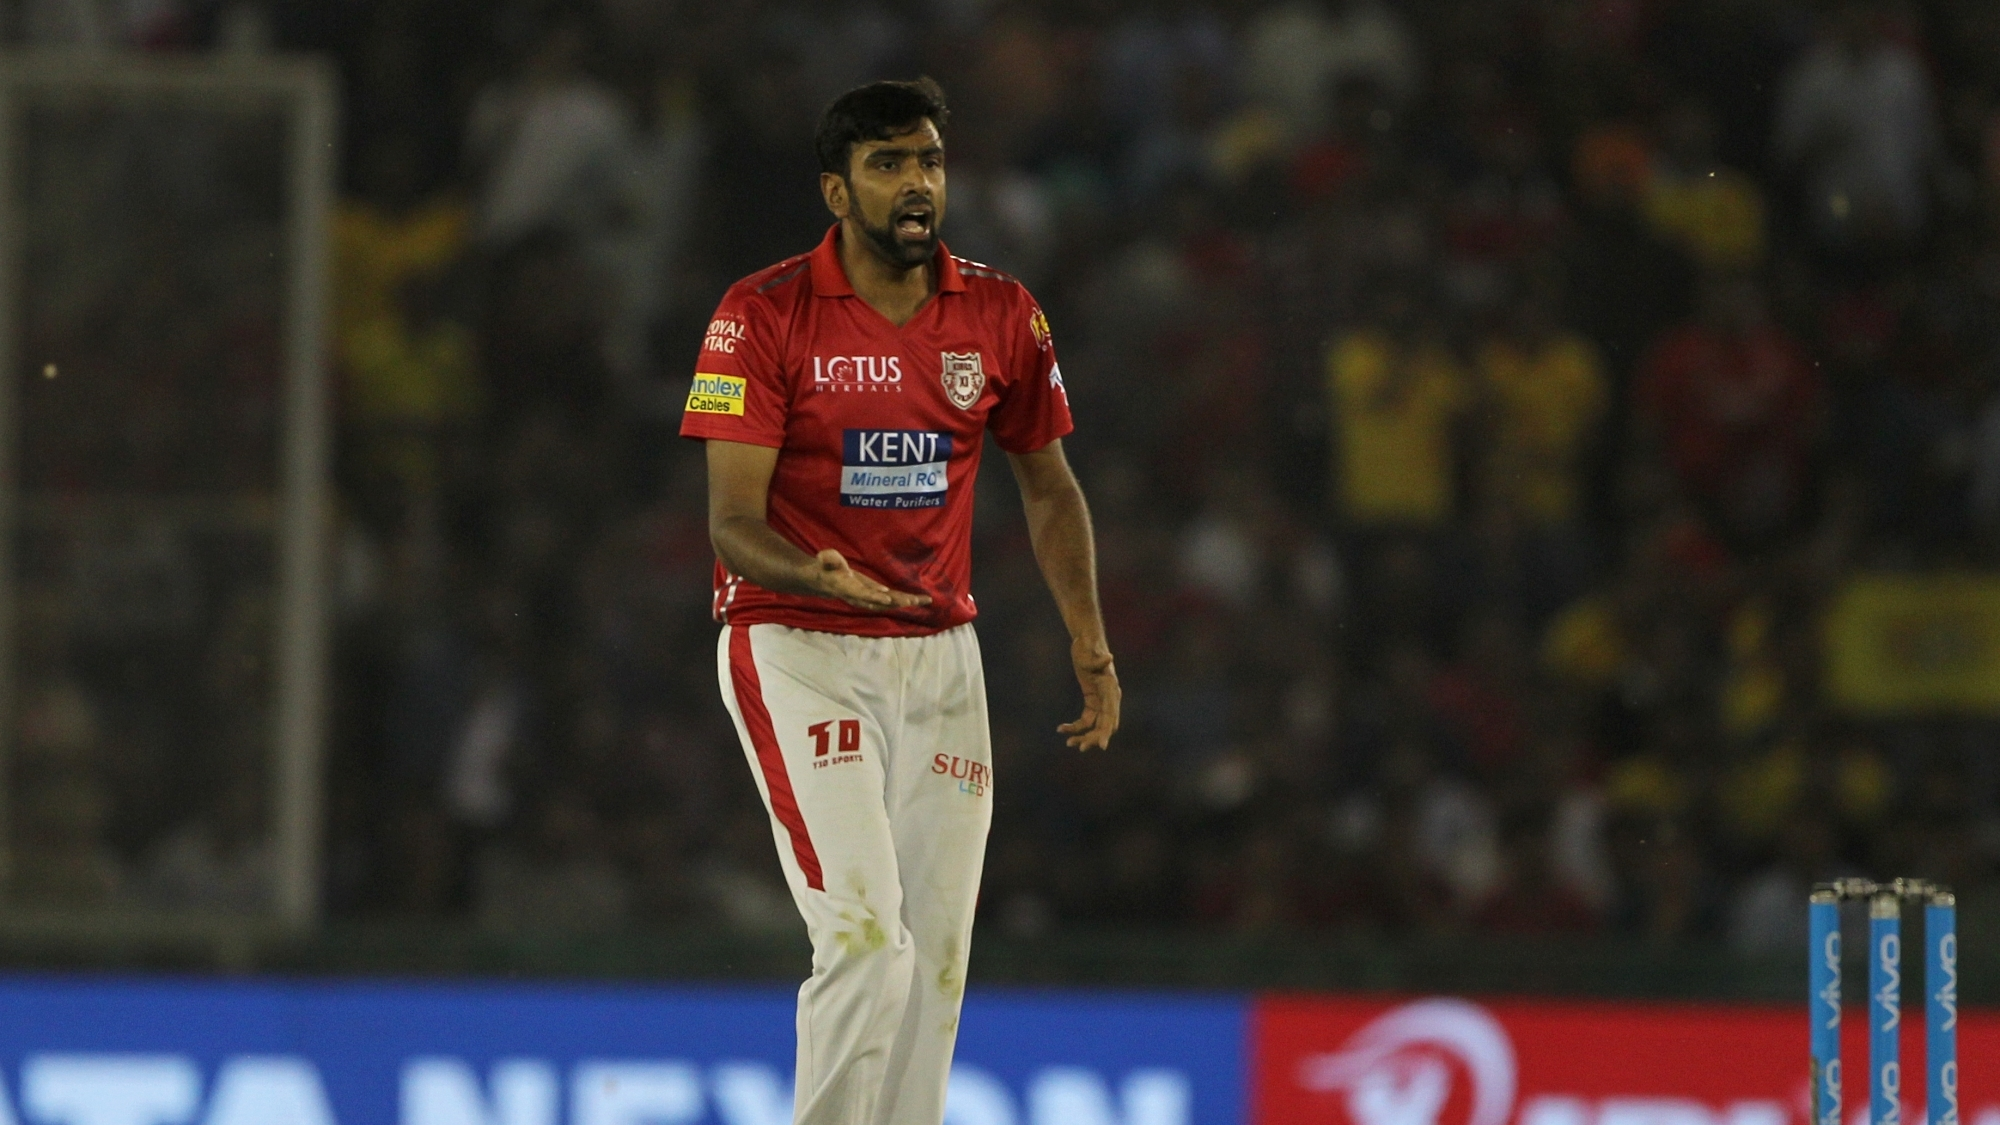 IPL 2018: Ravichandran Ashwin lost his cool when asked about Yuvraj Singh's exclusion